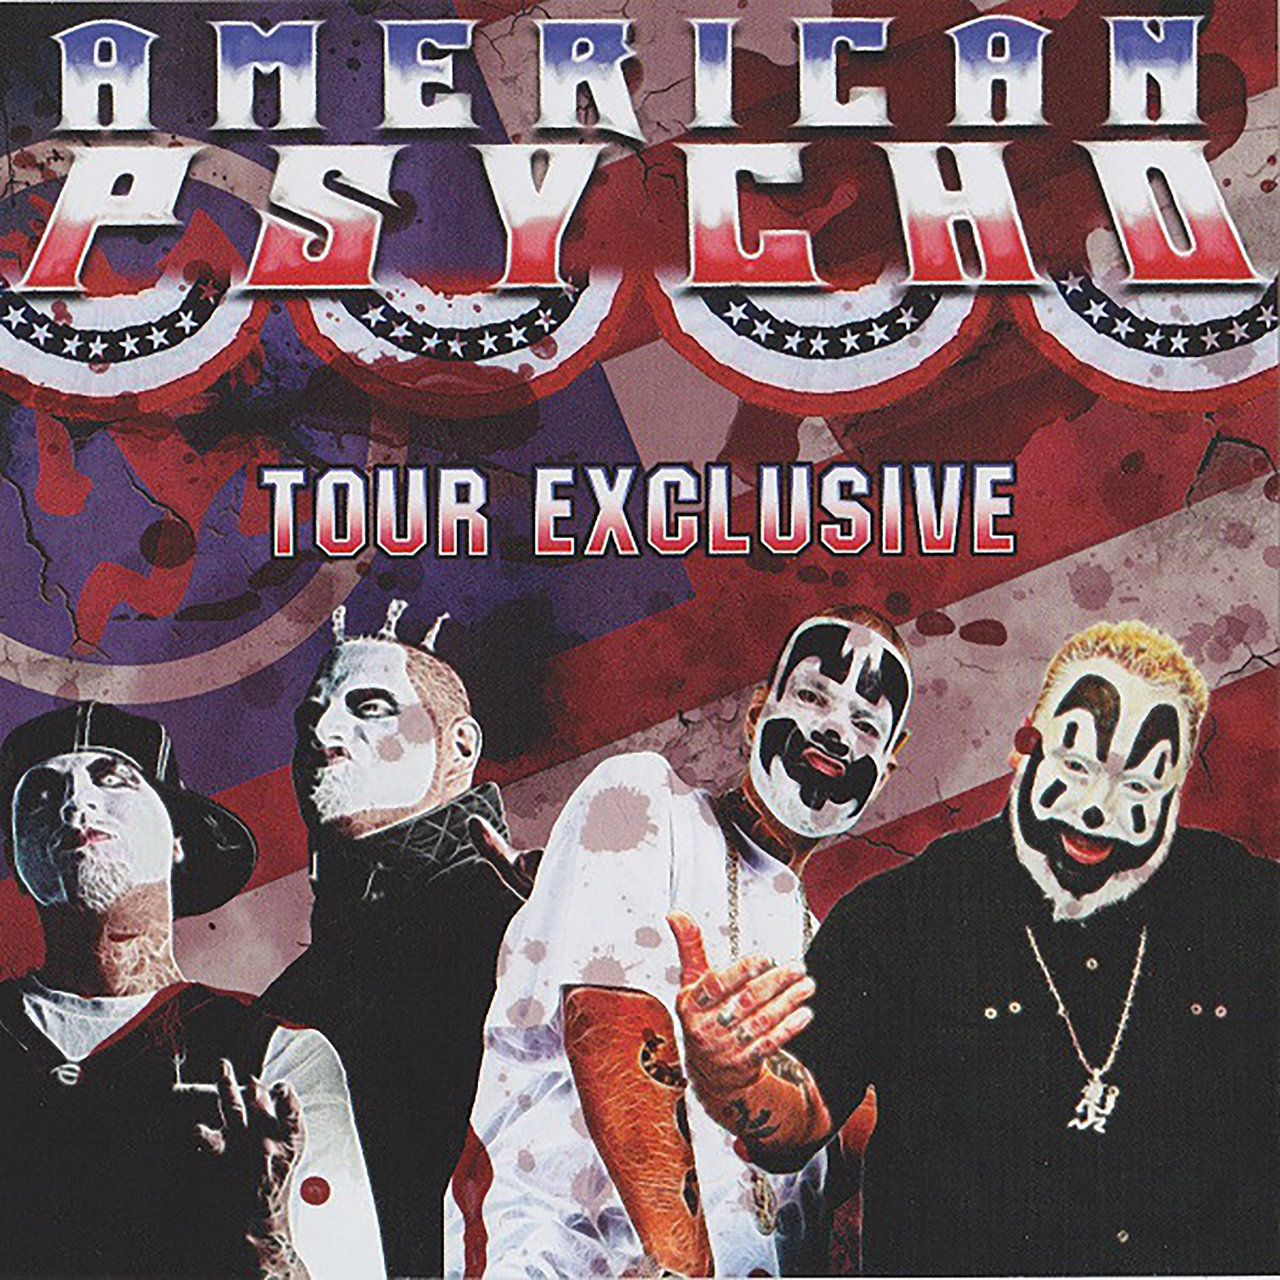 Icp Albums And Songs List Great tidal: listen to insane clown posse on tidal